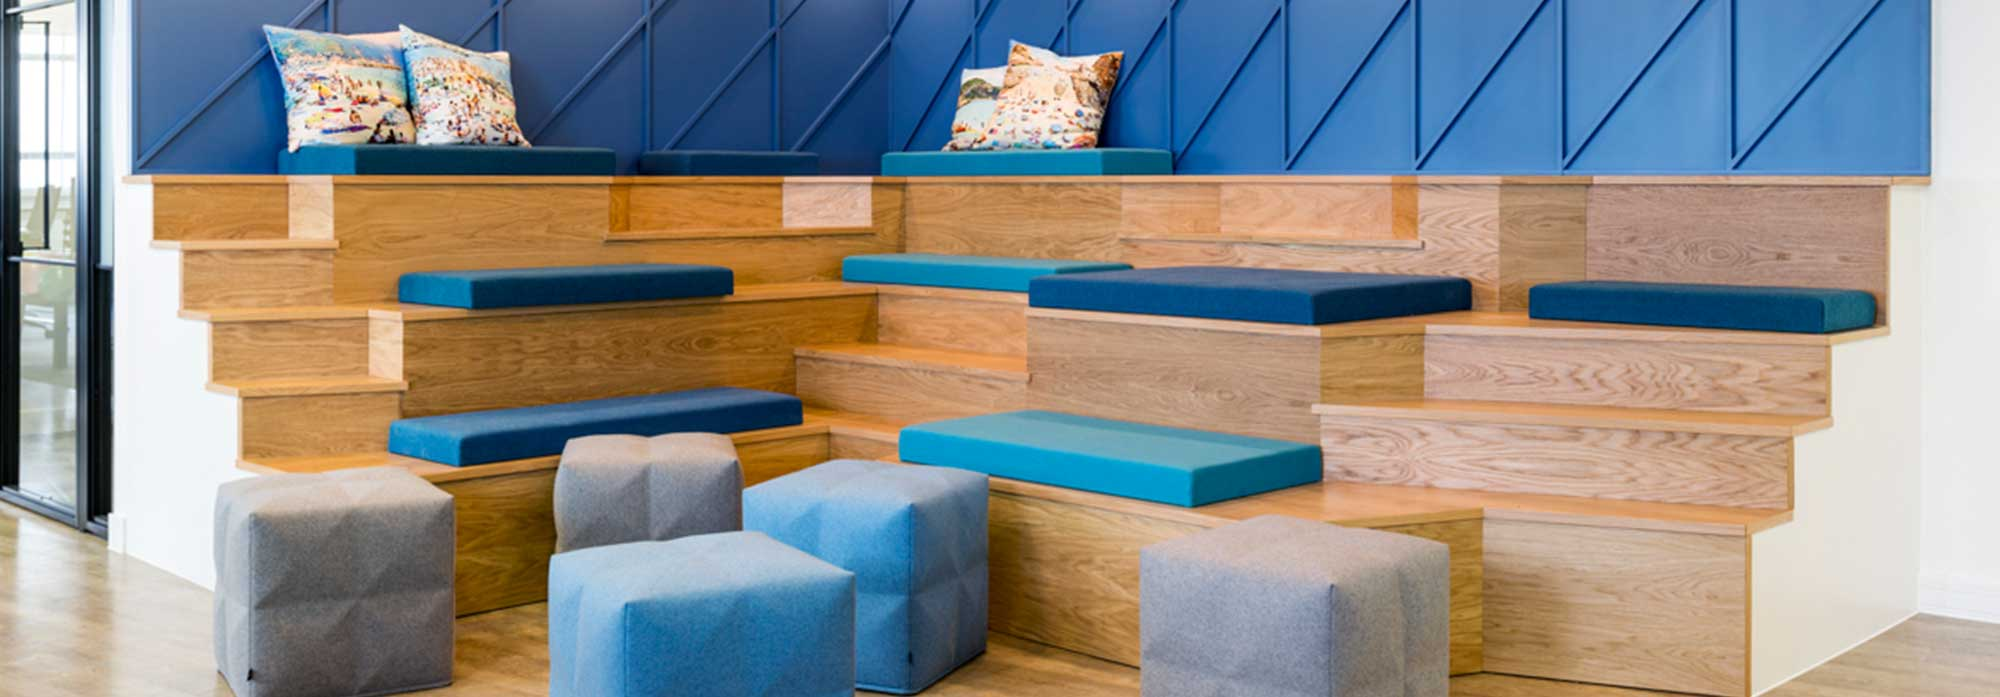 Pops of blue colour on natural wood bleachers